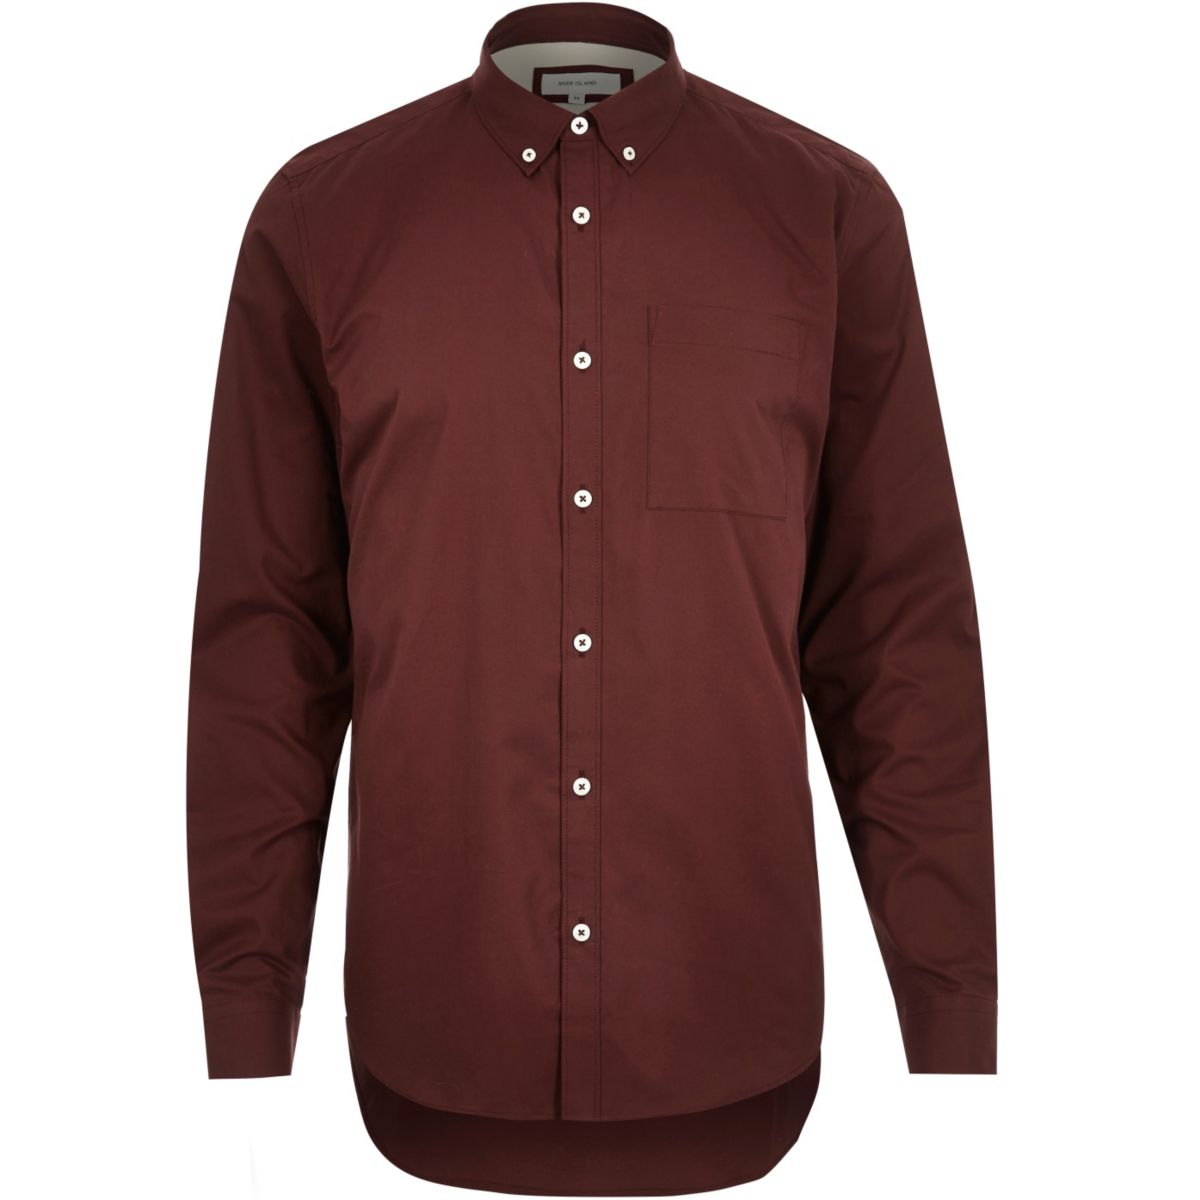 Dark red twill button-down shirt